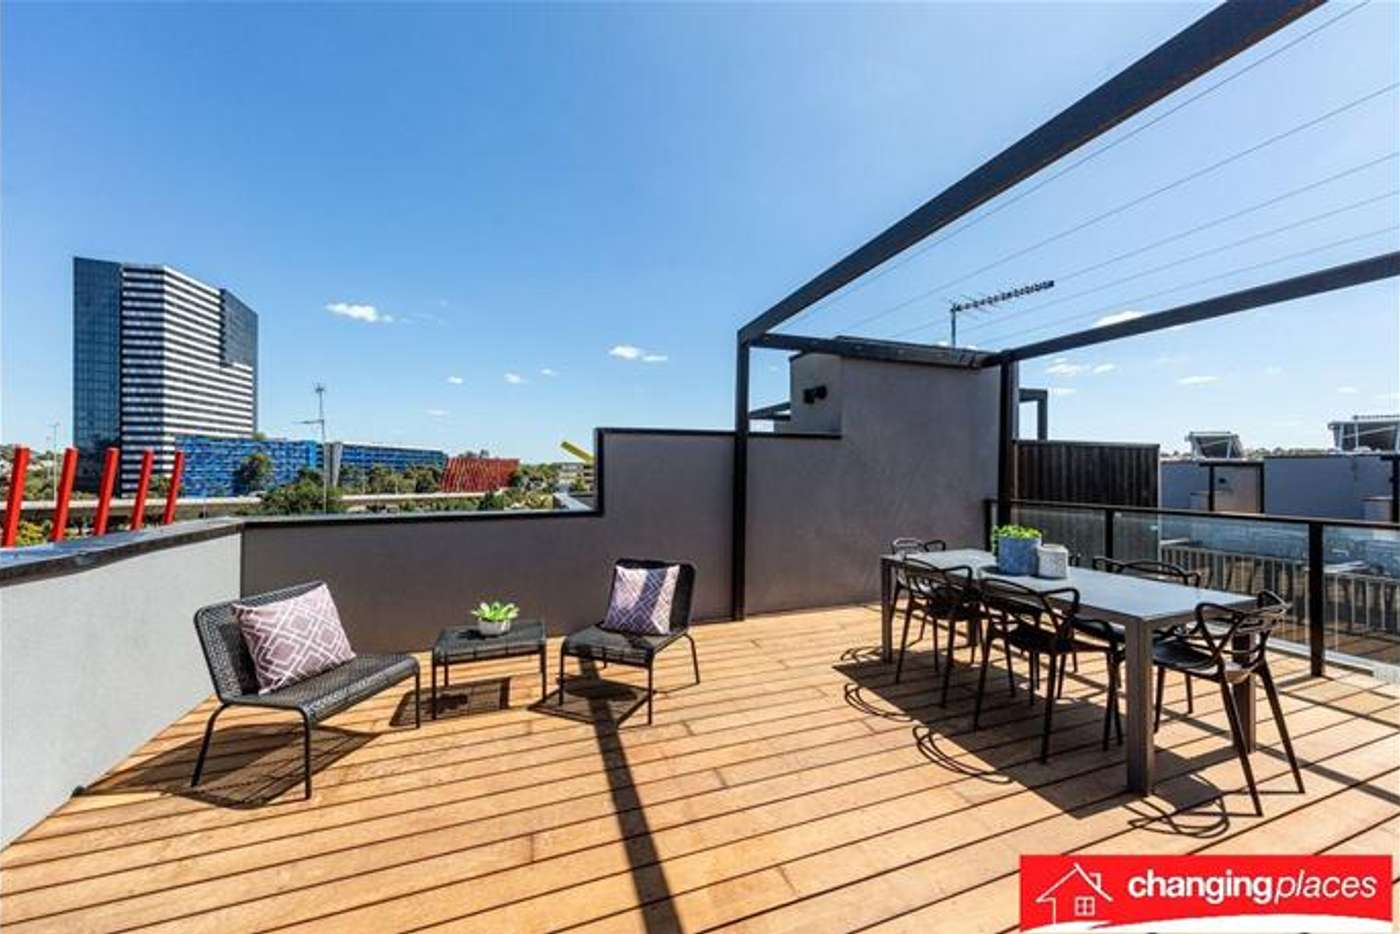 Main view of Homely townhouse listing, 14 Yates Lane, Parkville VIC 3052